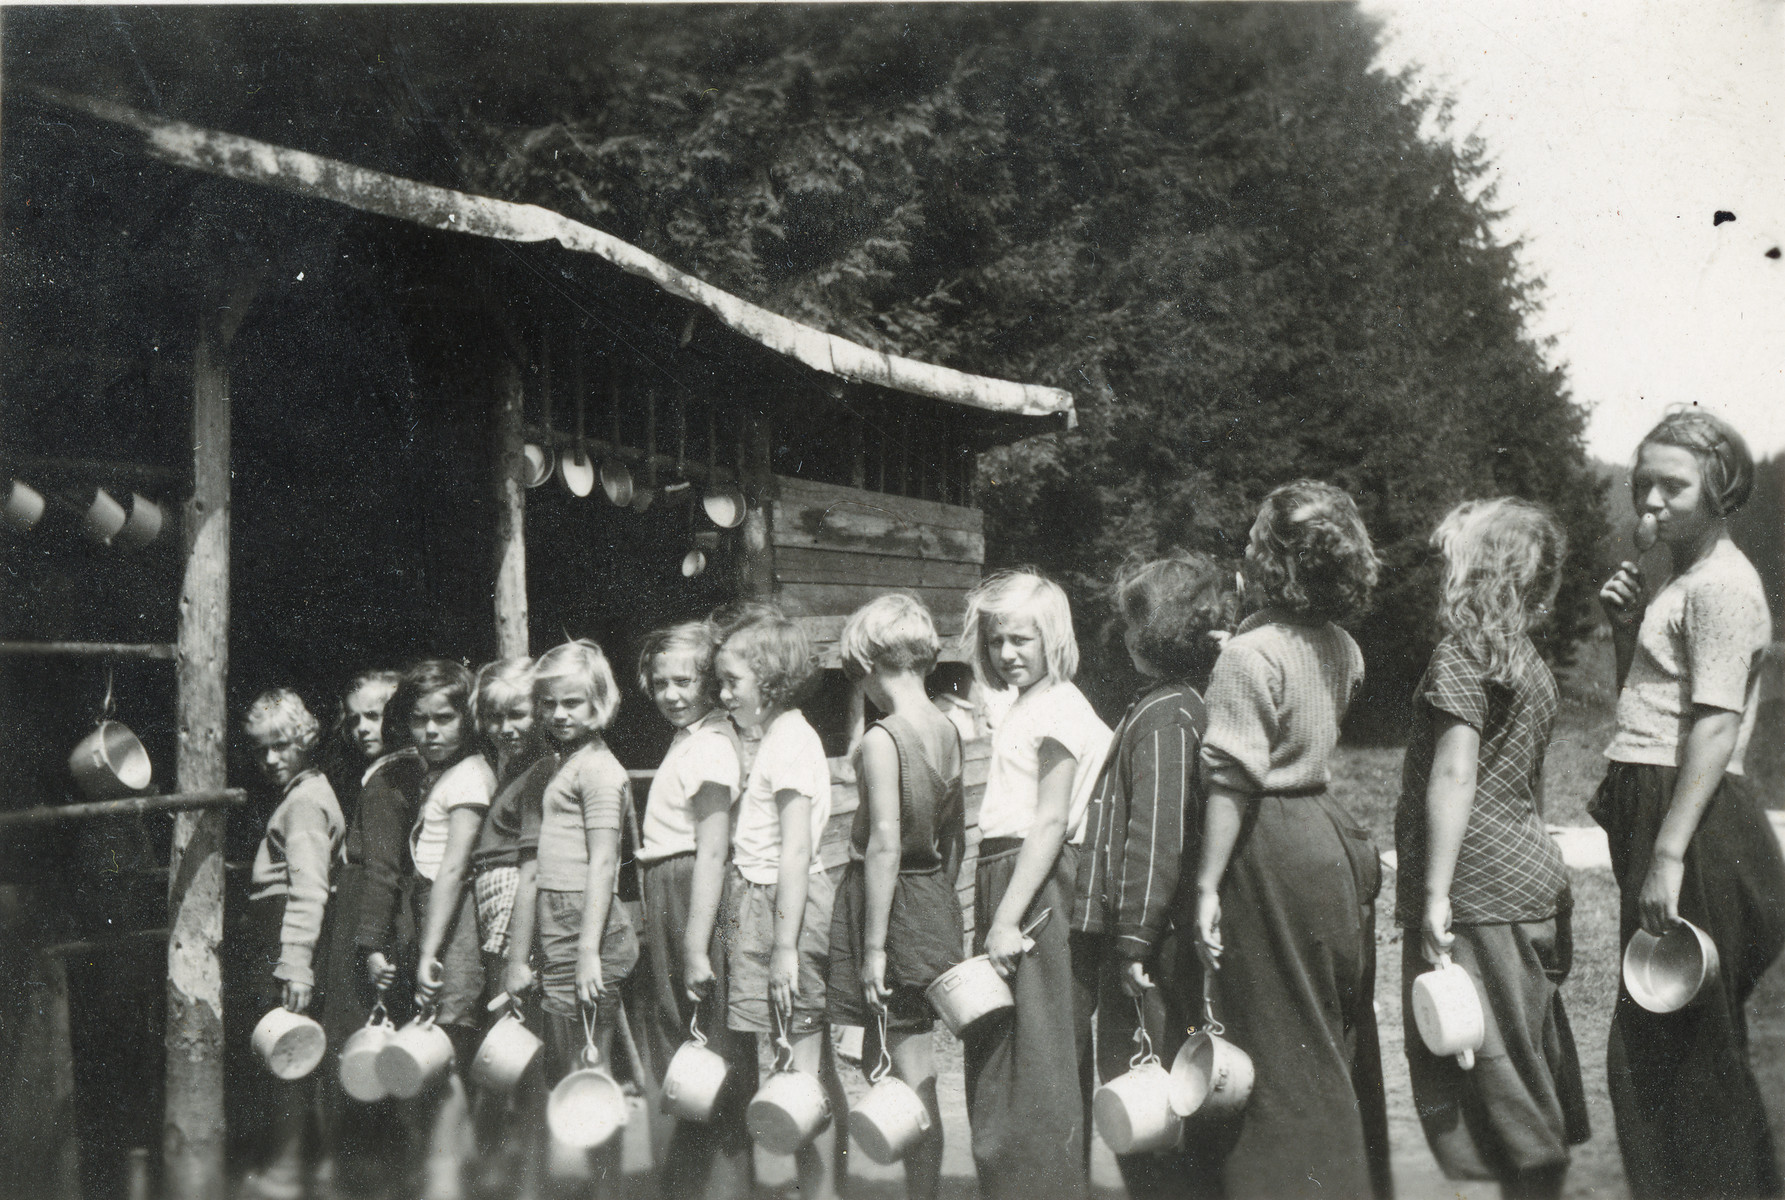 Young girls wait in line with their lunch pails in a summer camp in Czechoslovakia.